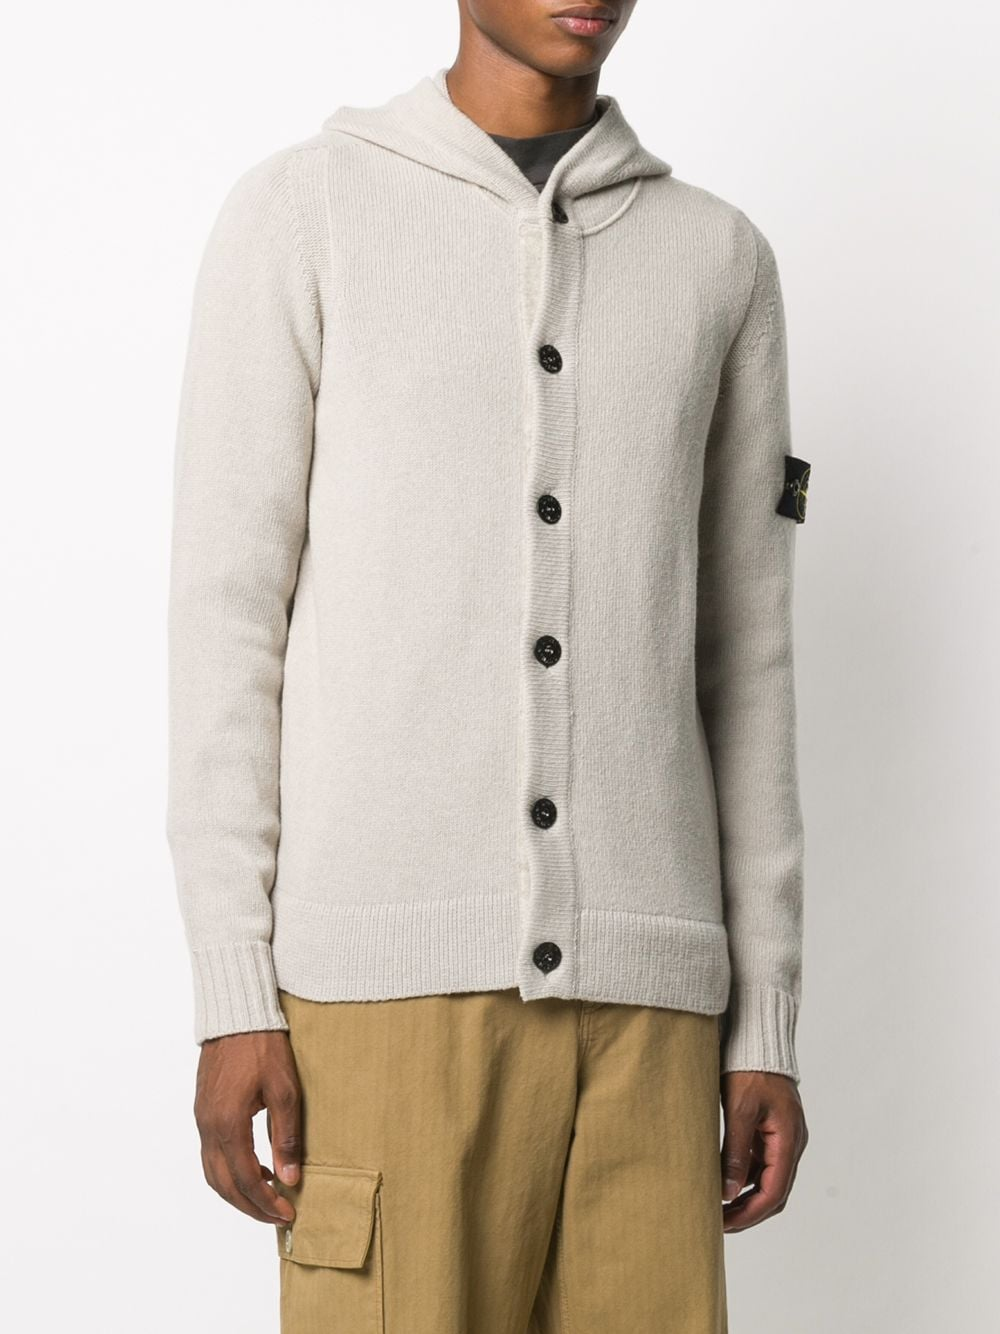 beige wool-blend hooded cardigan featuring knitted construction STONE ISLAND |  | 7315506A3V0092